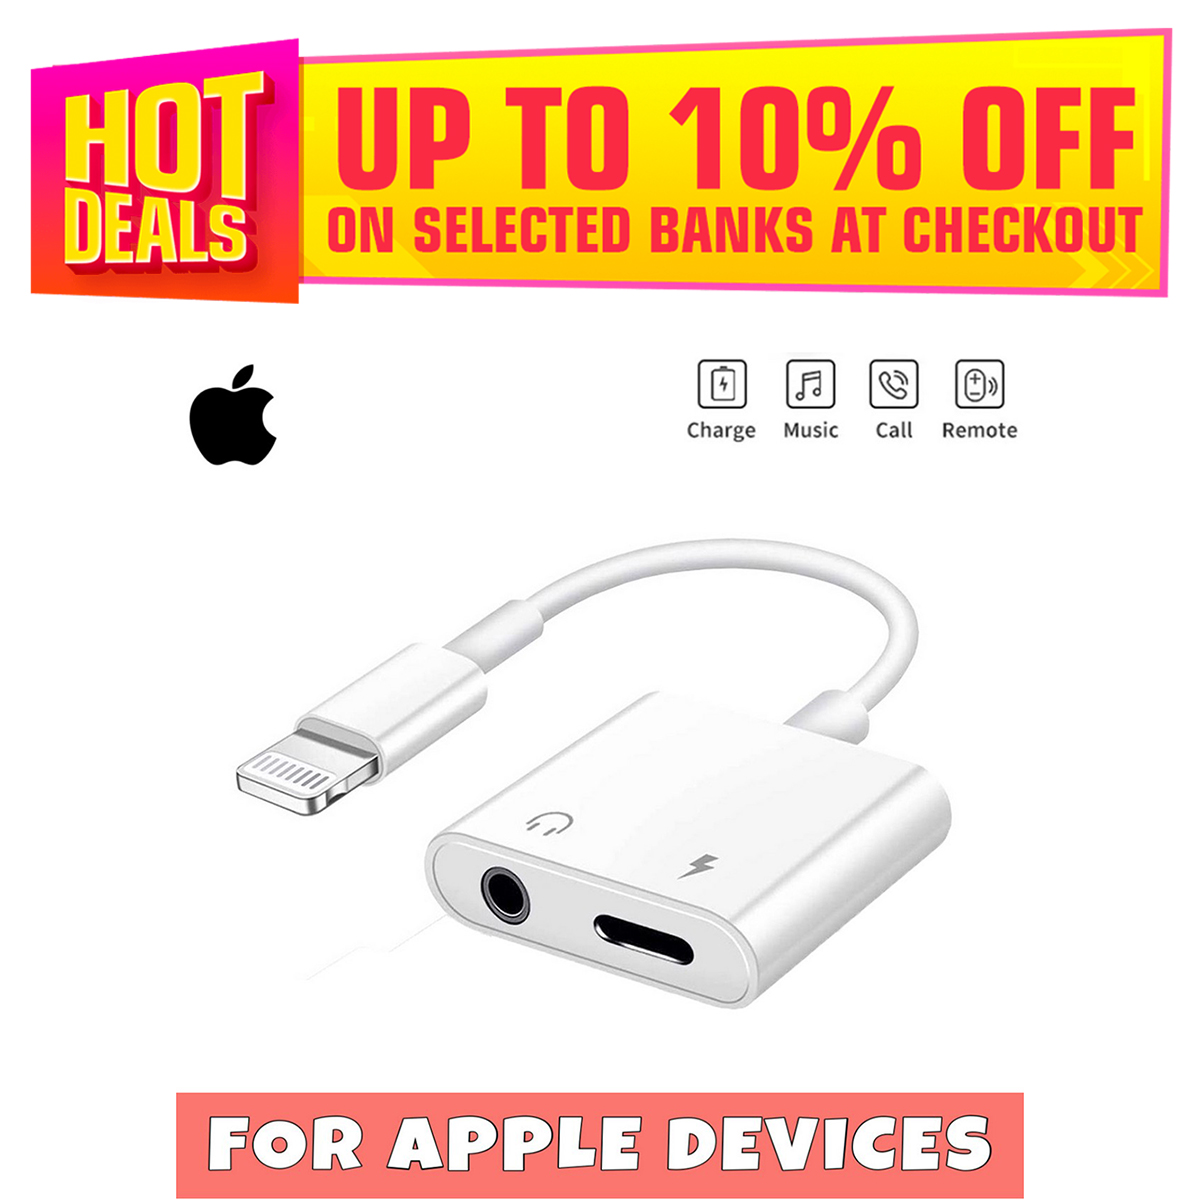 AEYTECH Iphone Headphone 2 in 1 Jack Adapter LIGHTNING TO 3.5MM HEADPHONE JACK ADAPTER FOR IPHONE Headphones Adapter to Dongle Aux Cable Converter Iphone Headphones Convertor Car Charge Accessories Cables & Audio Connector 2 in 1 Earphone Splitter